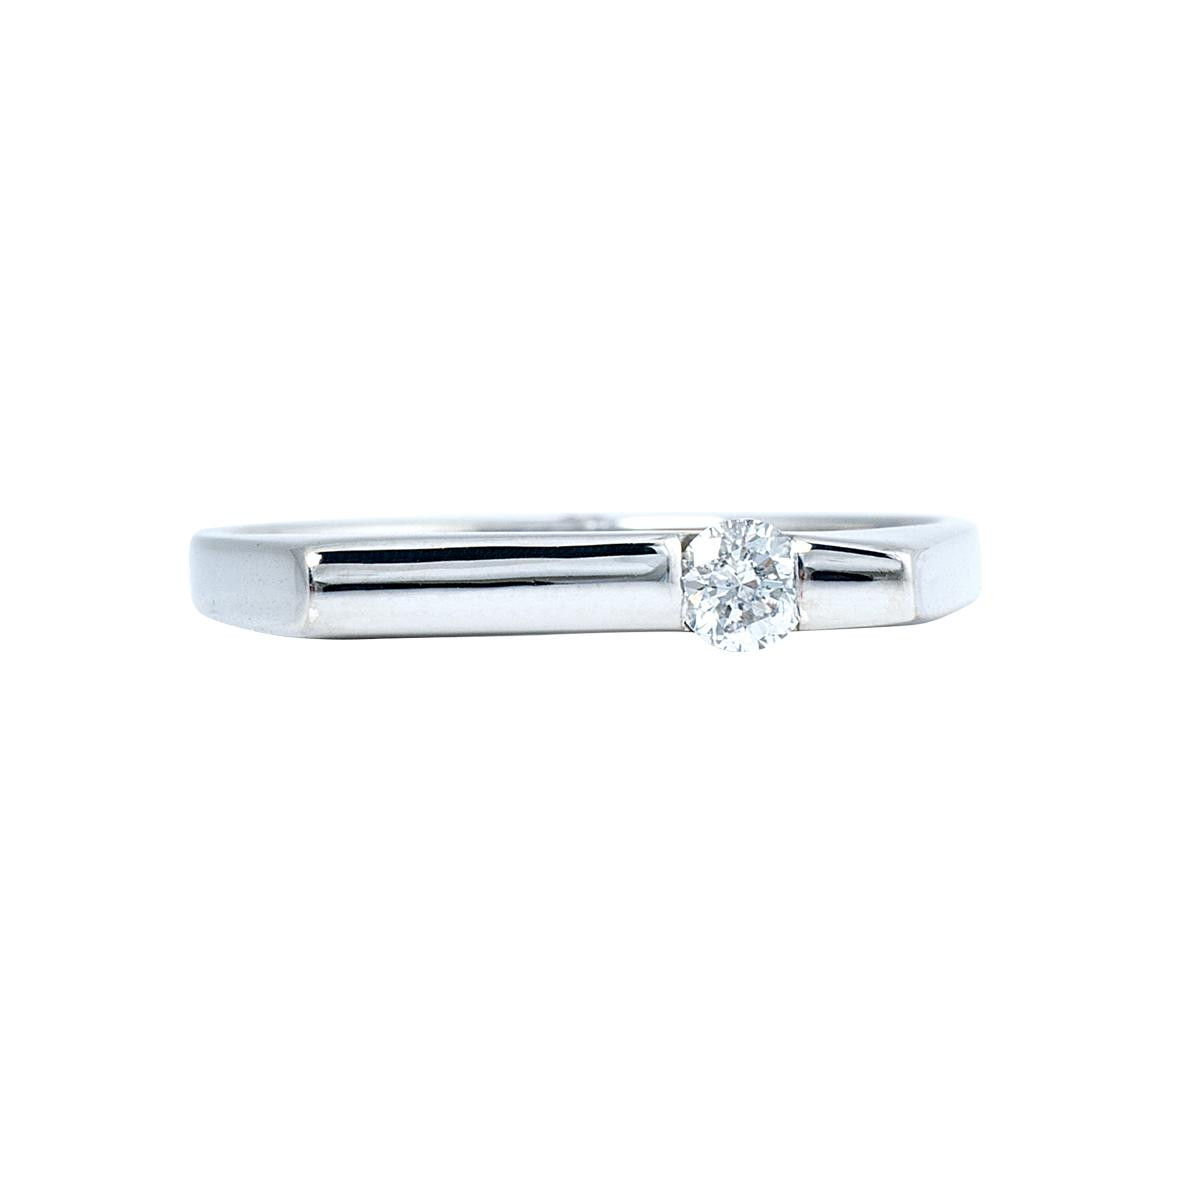 Vintage 0.10 CT Diamond Channel Bar Ring